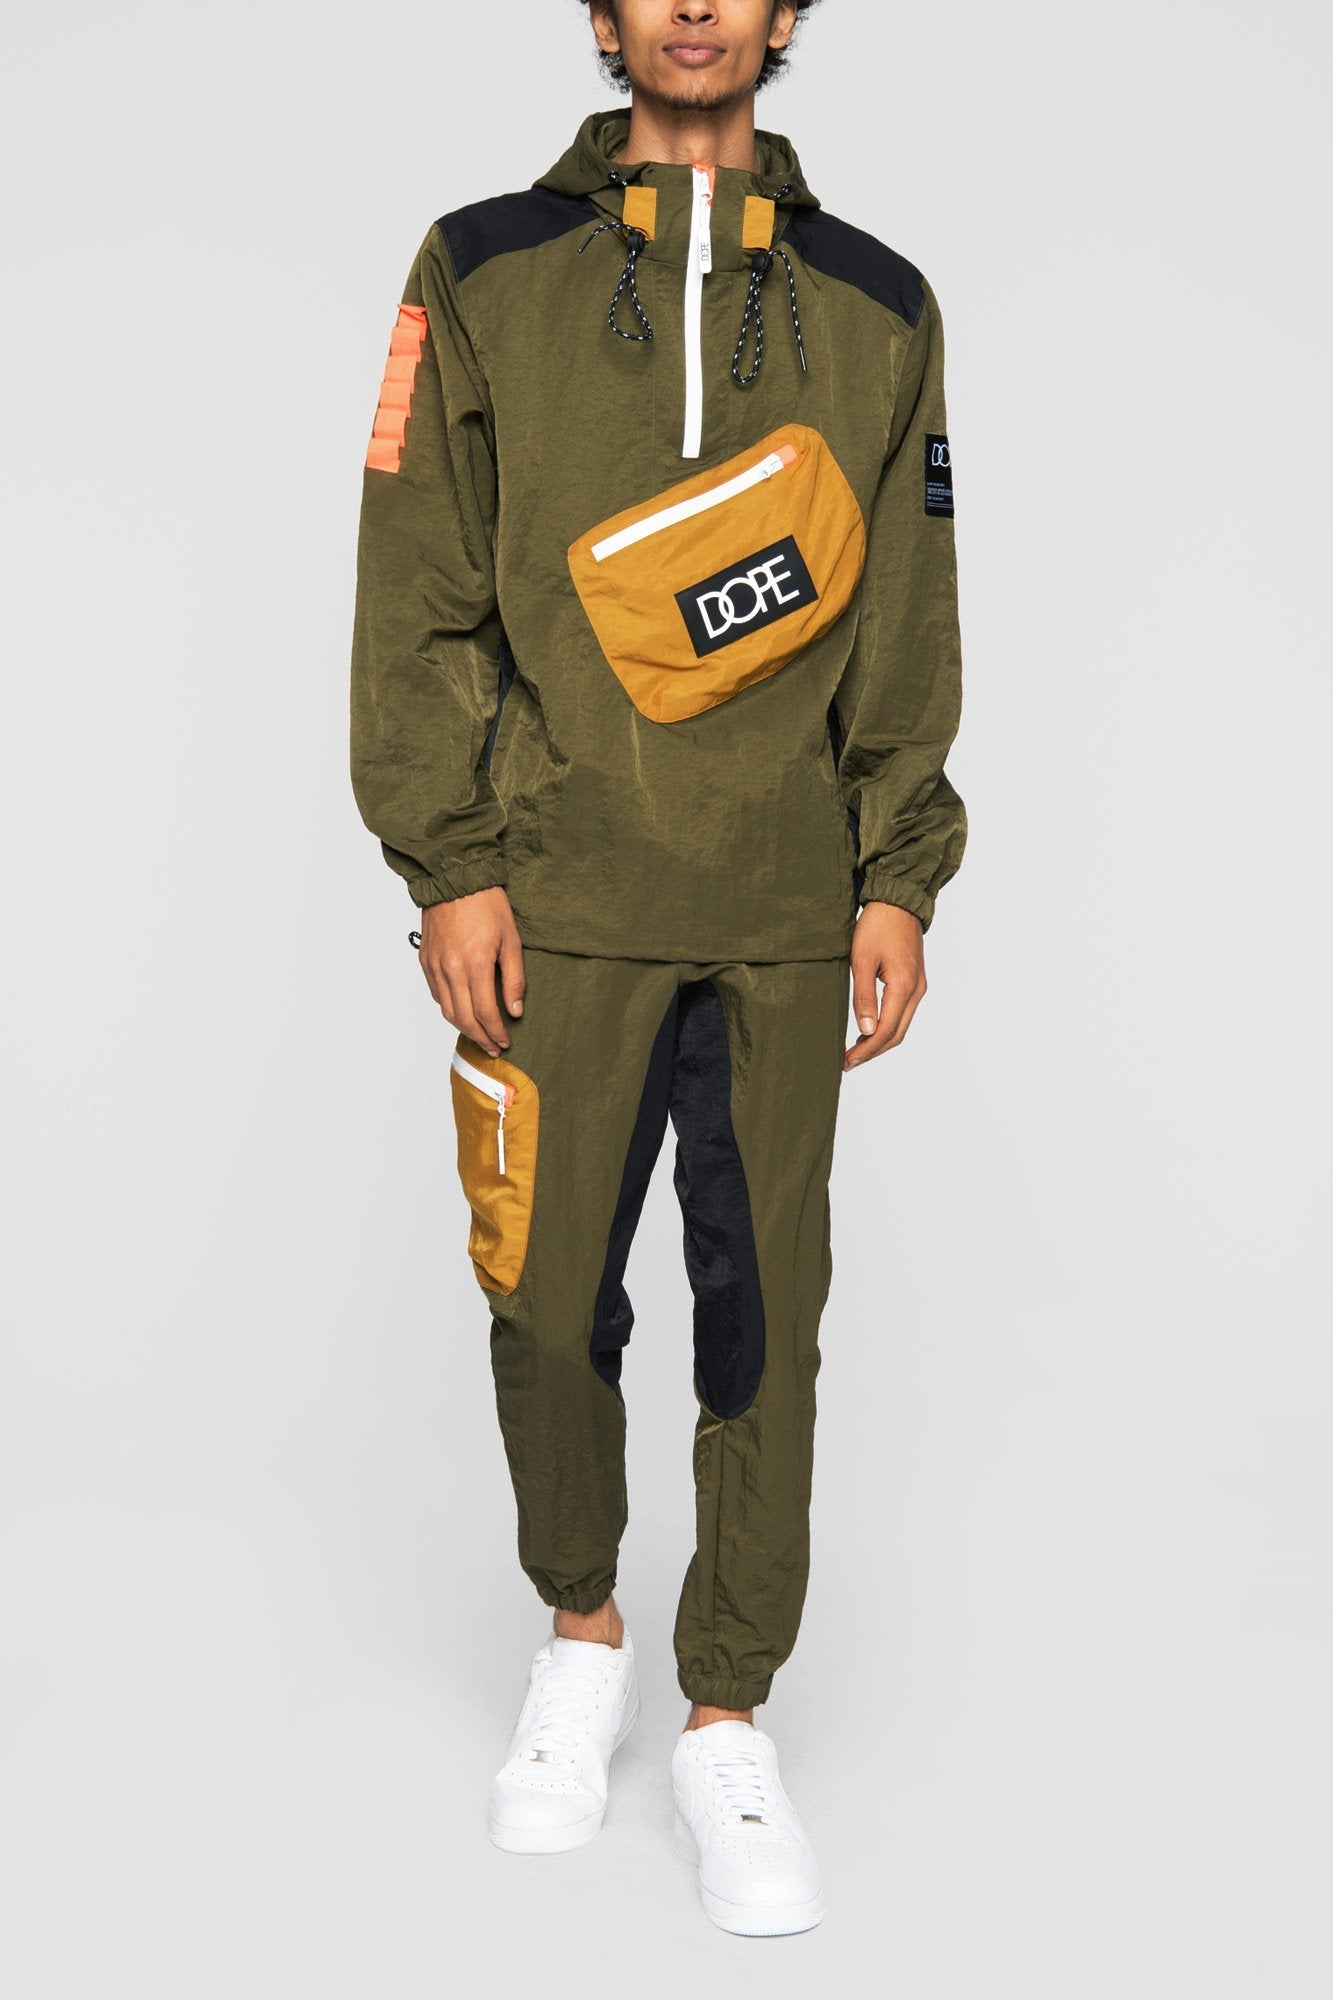 DOPE Nomad Anorak #Army Green